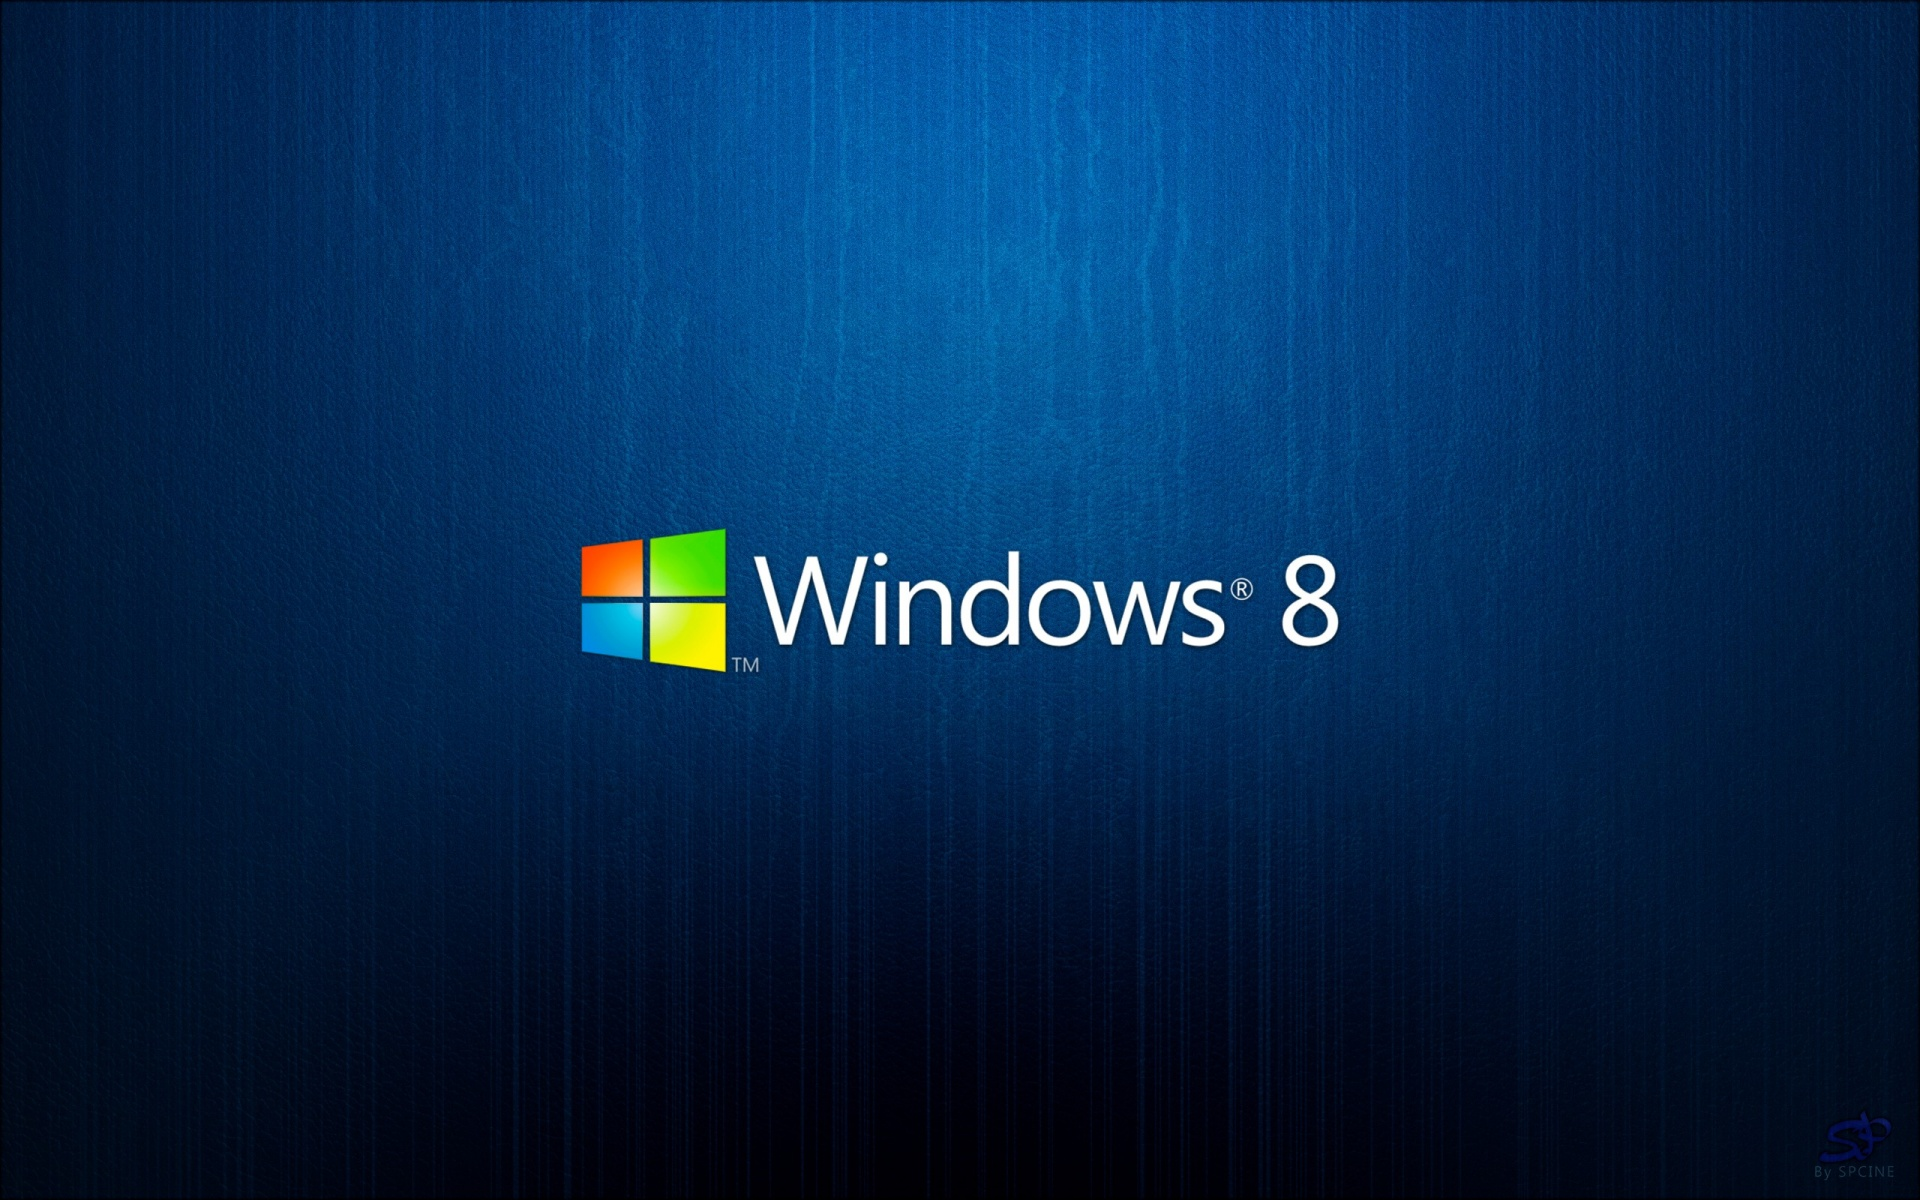 Windows-8-Wallpaper-2013